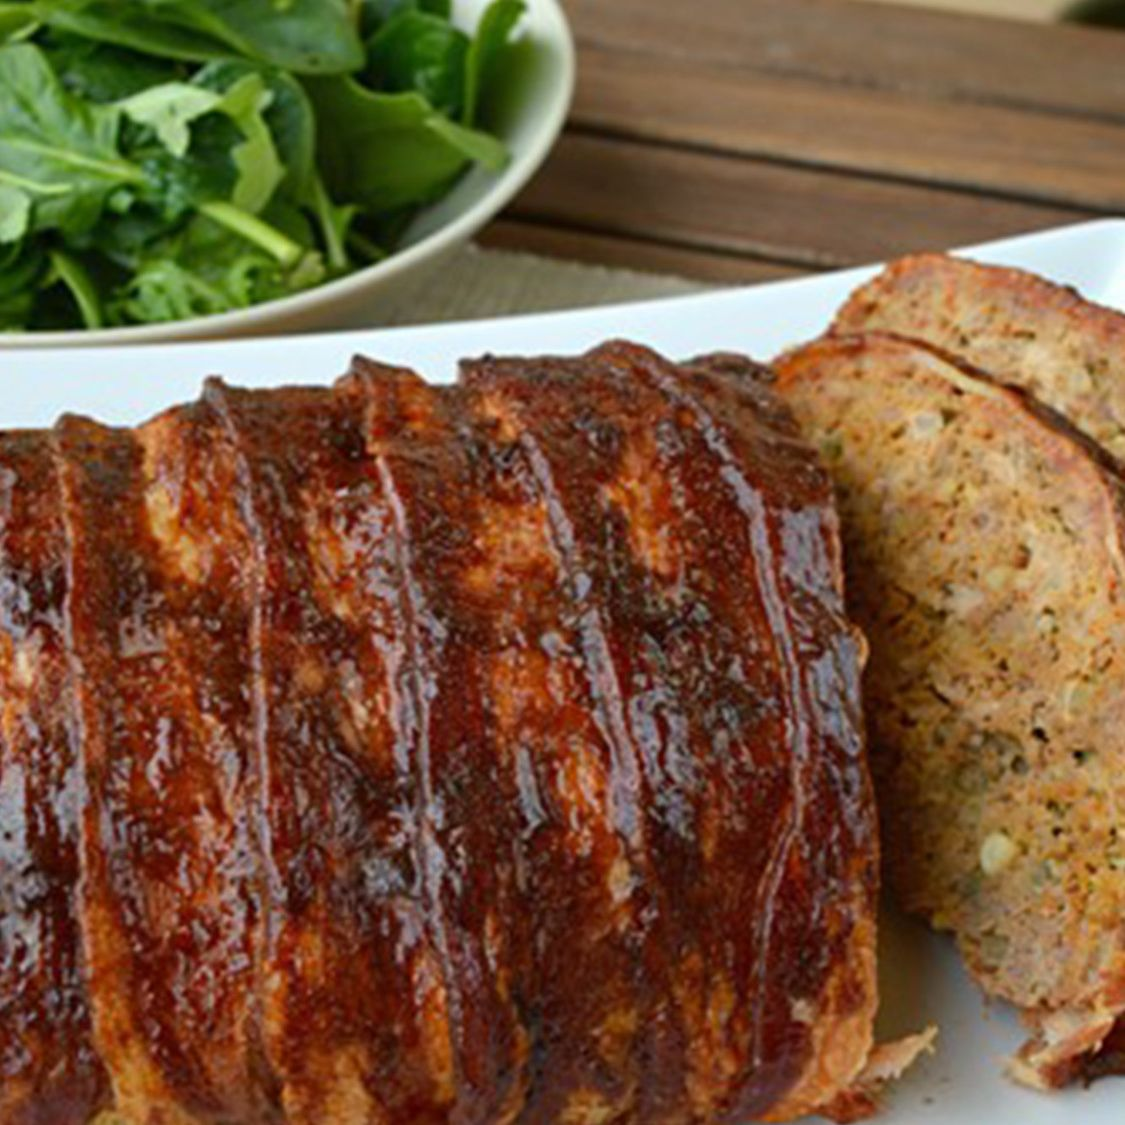 barbq_baconwrapped_meatloaf.jpg